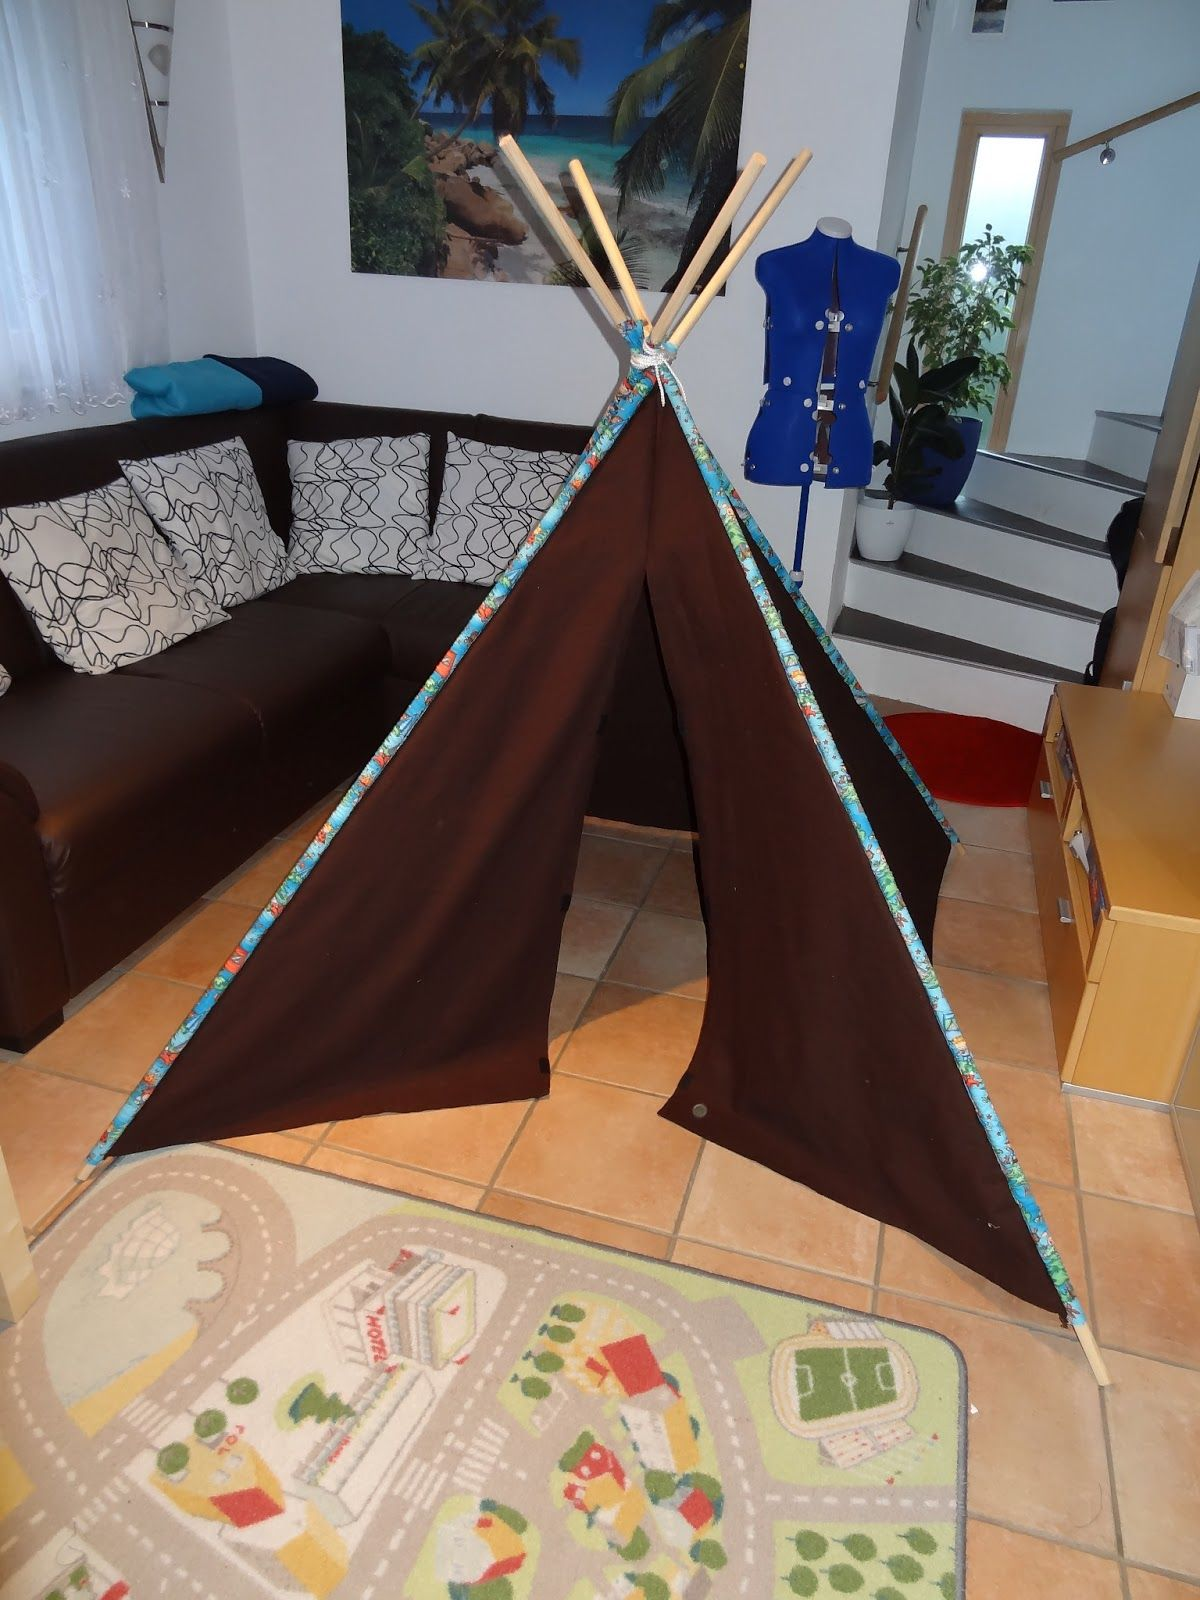 alefe 39 s blog tipi indianerzelt teepee zelt wigwam. Black Bedroom Furniture Sets. Home Design Ideas